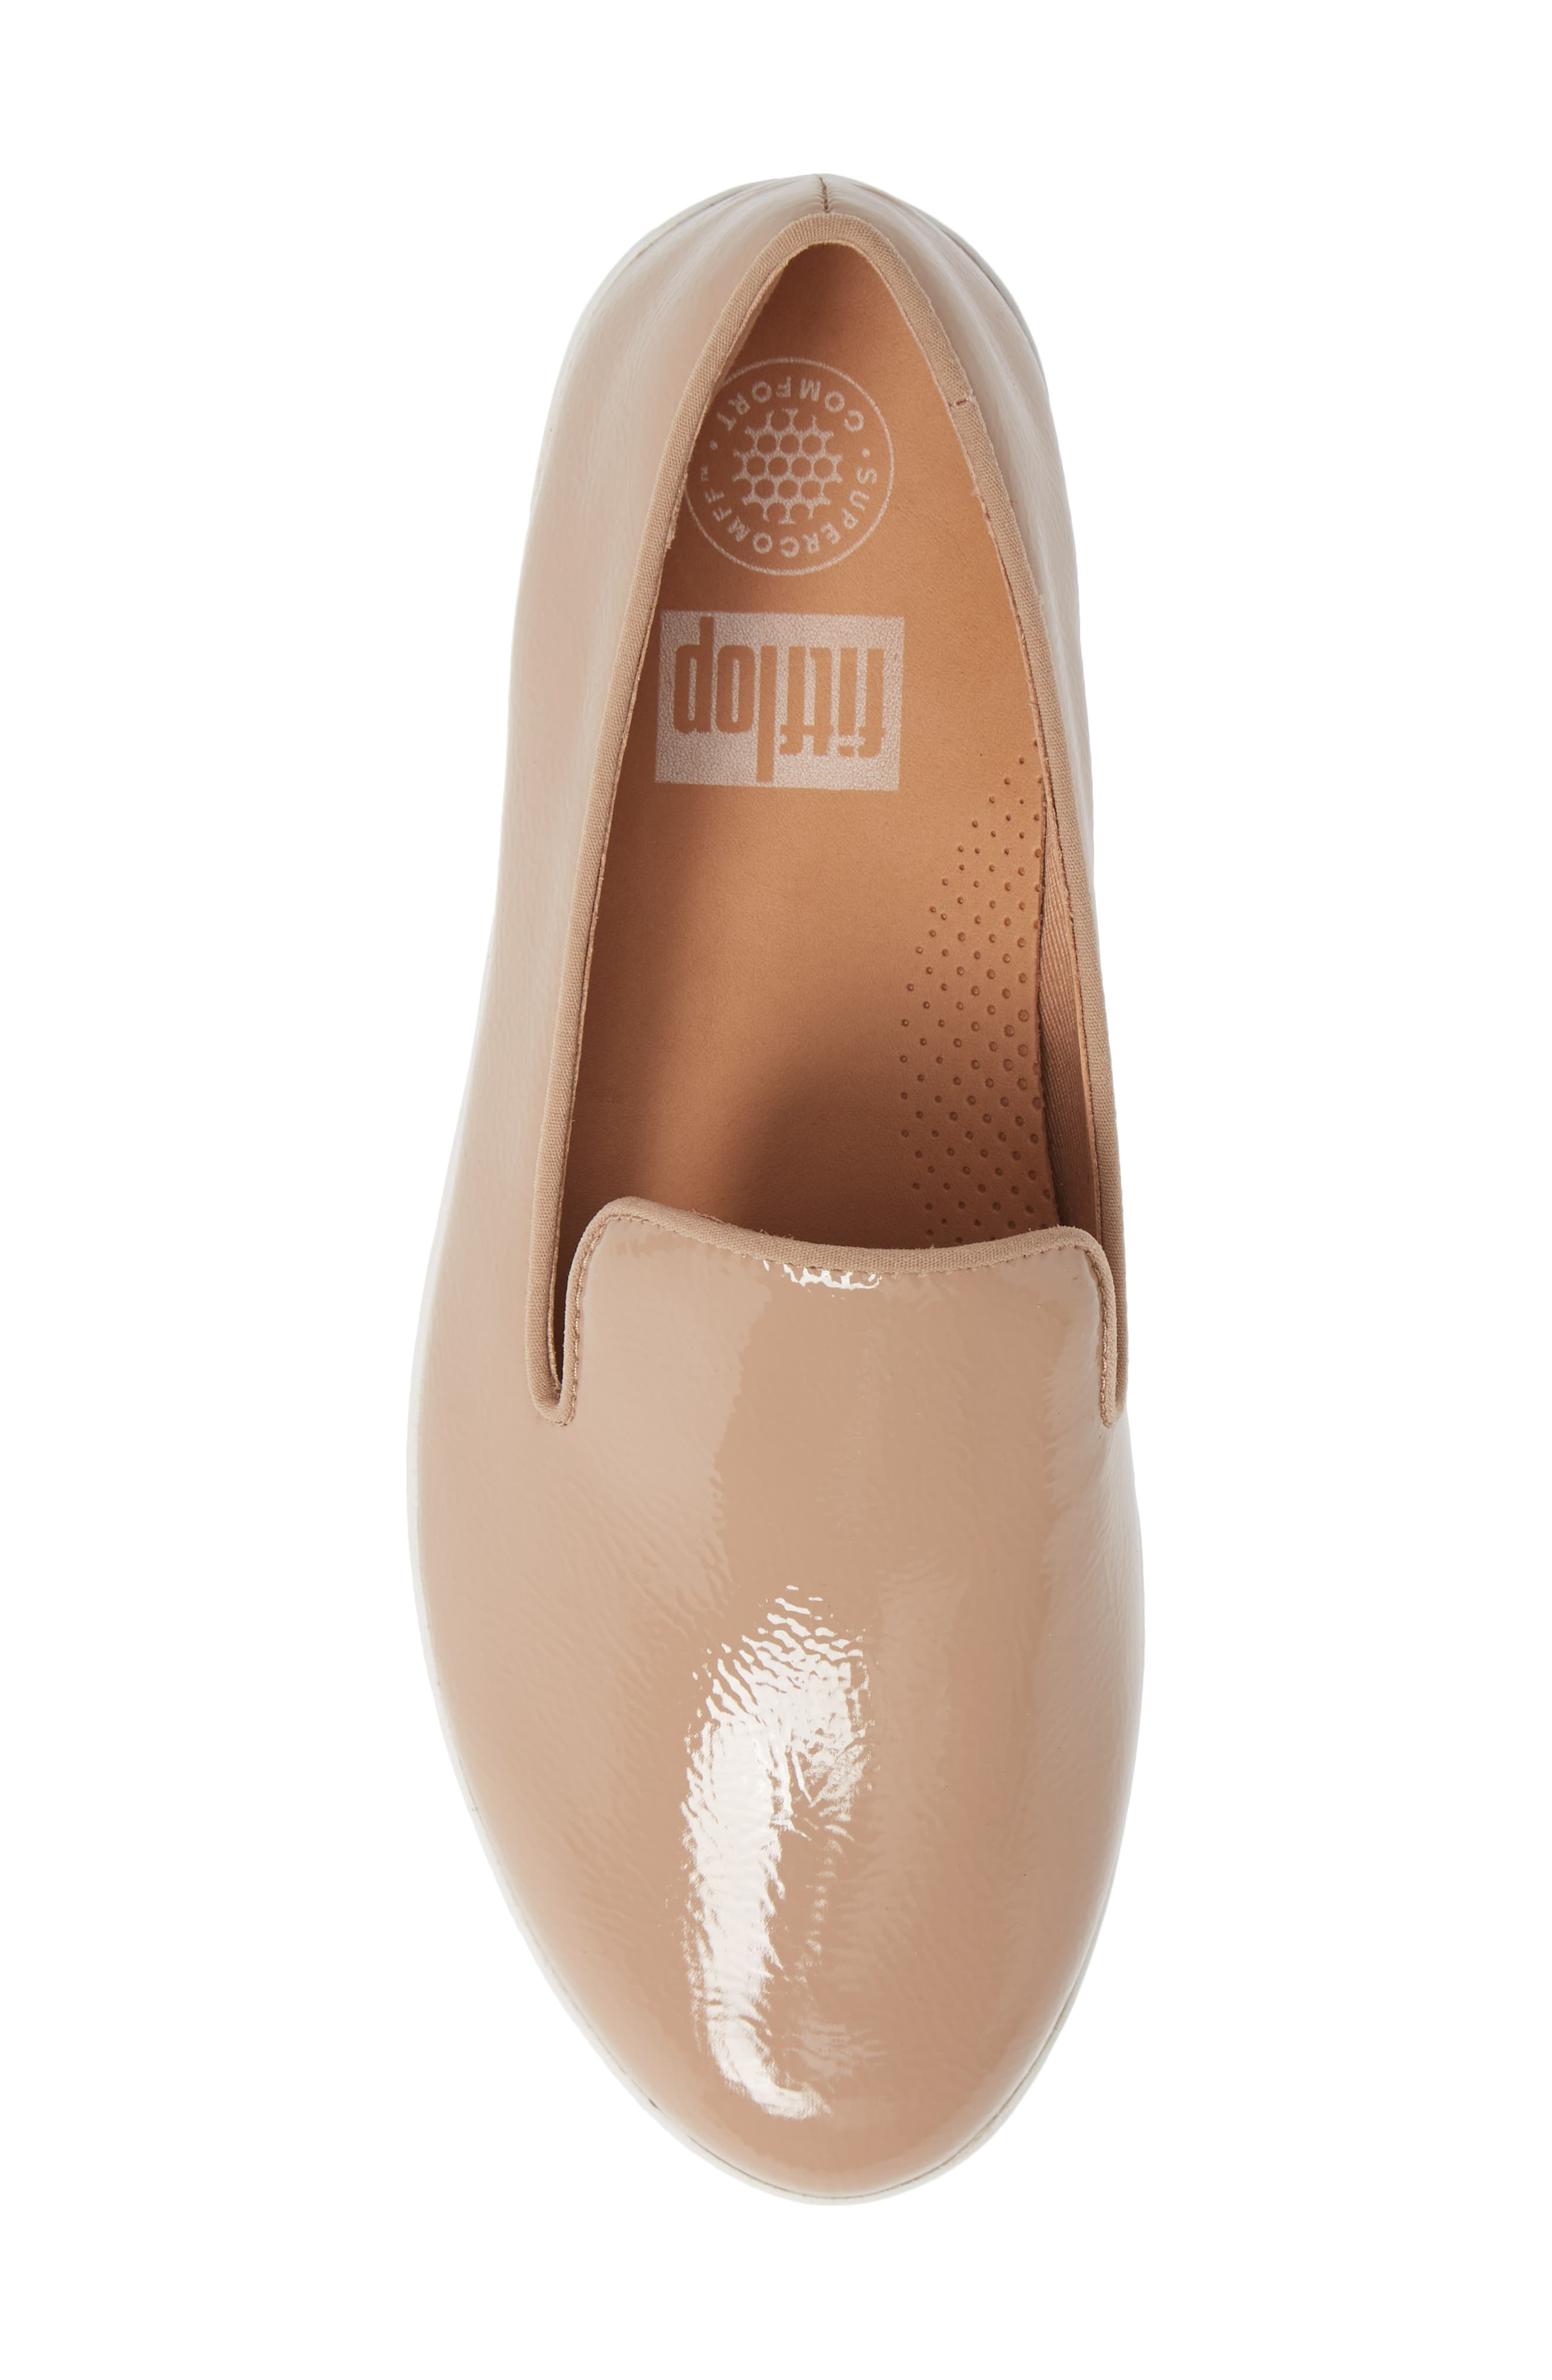 Audrey Smoking Slipper,                             Alternate thumbnail 5, color,                             TAUPE PATENT LEATHER